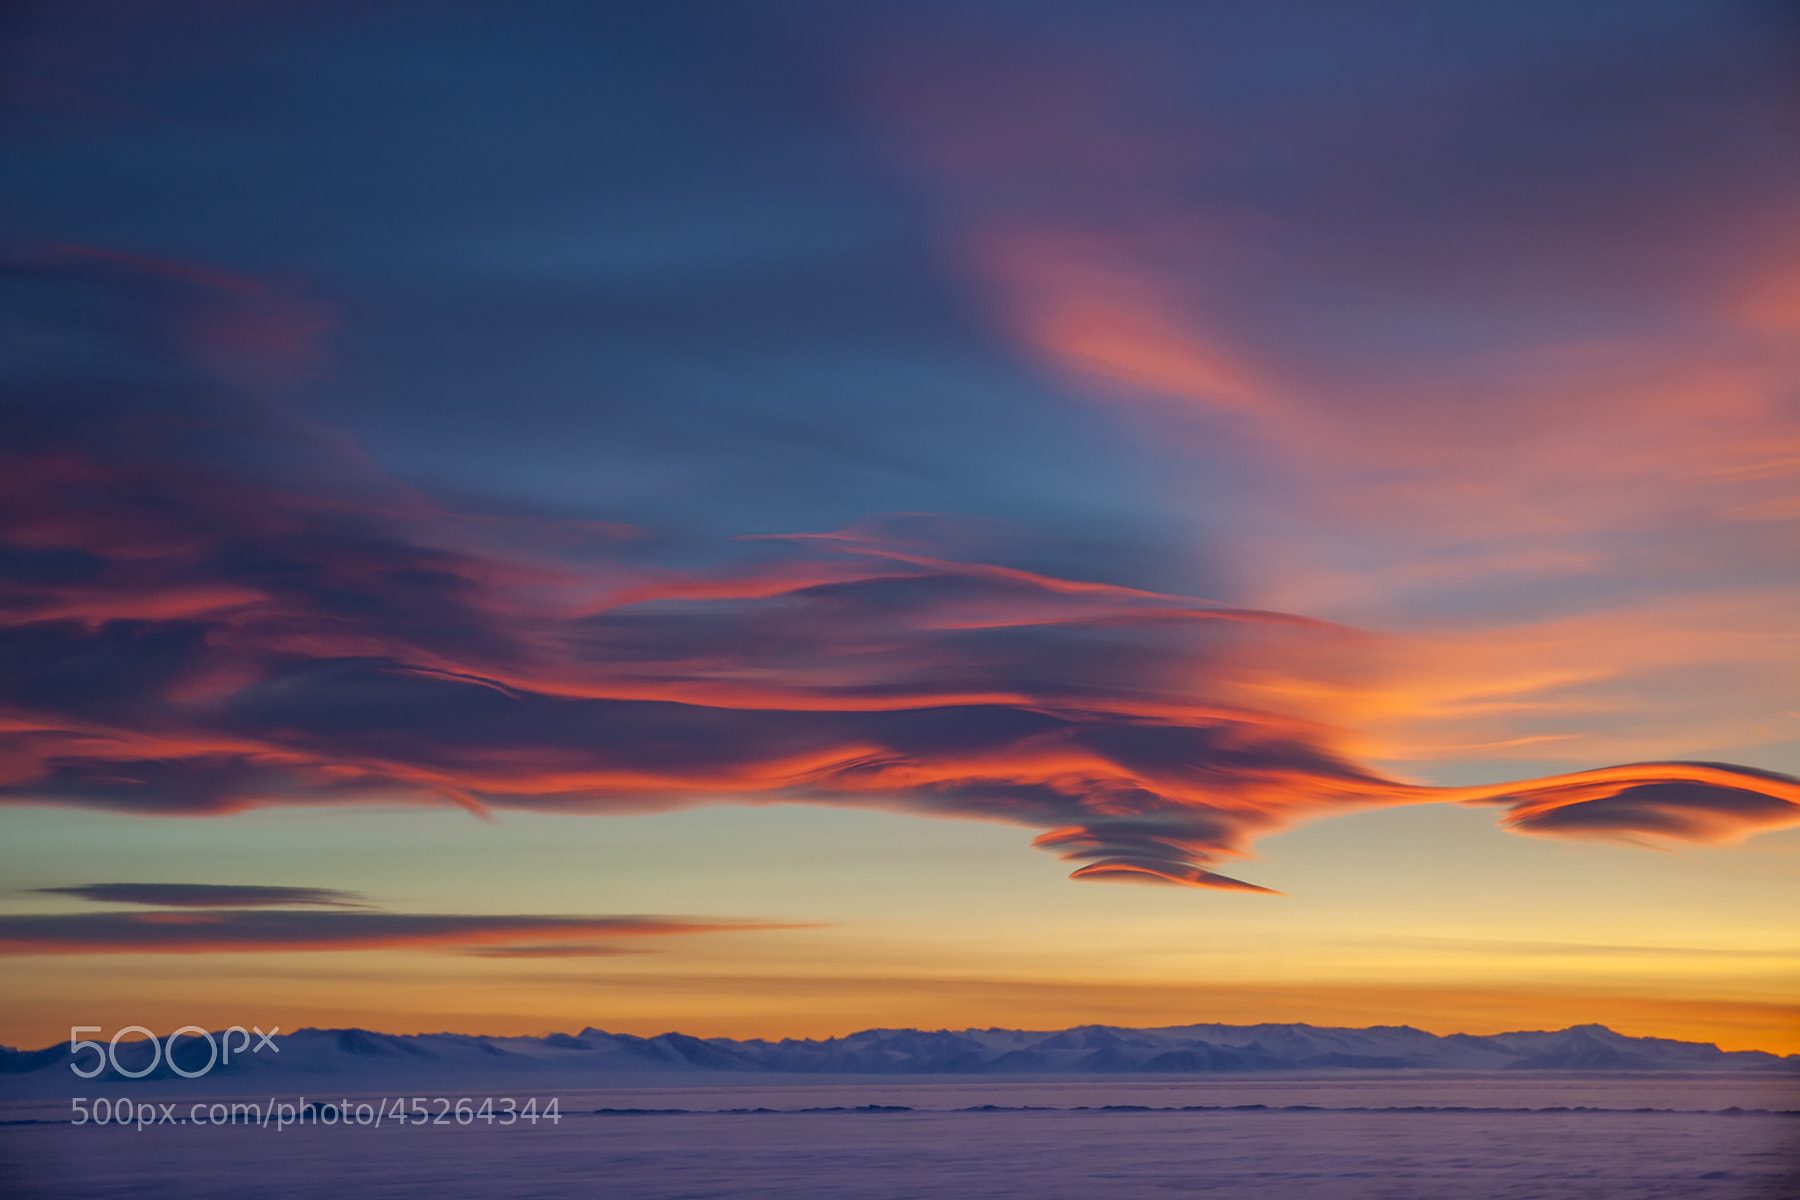 Photograph Lenticular Love by Deven Stross on 500px